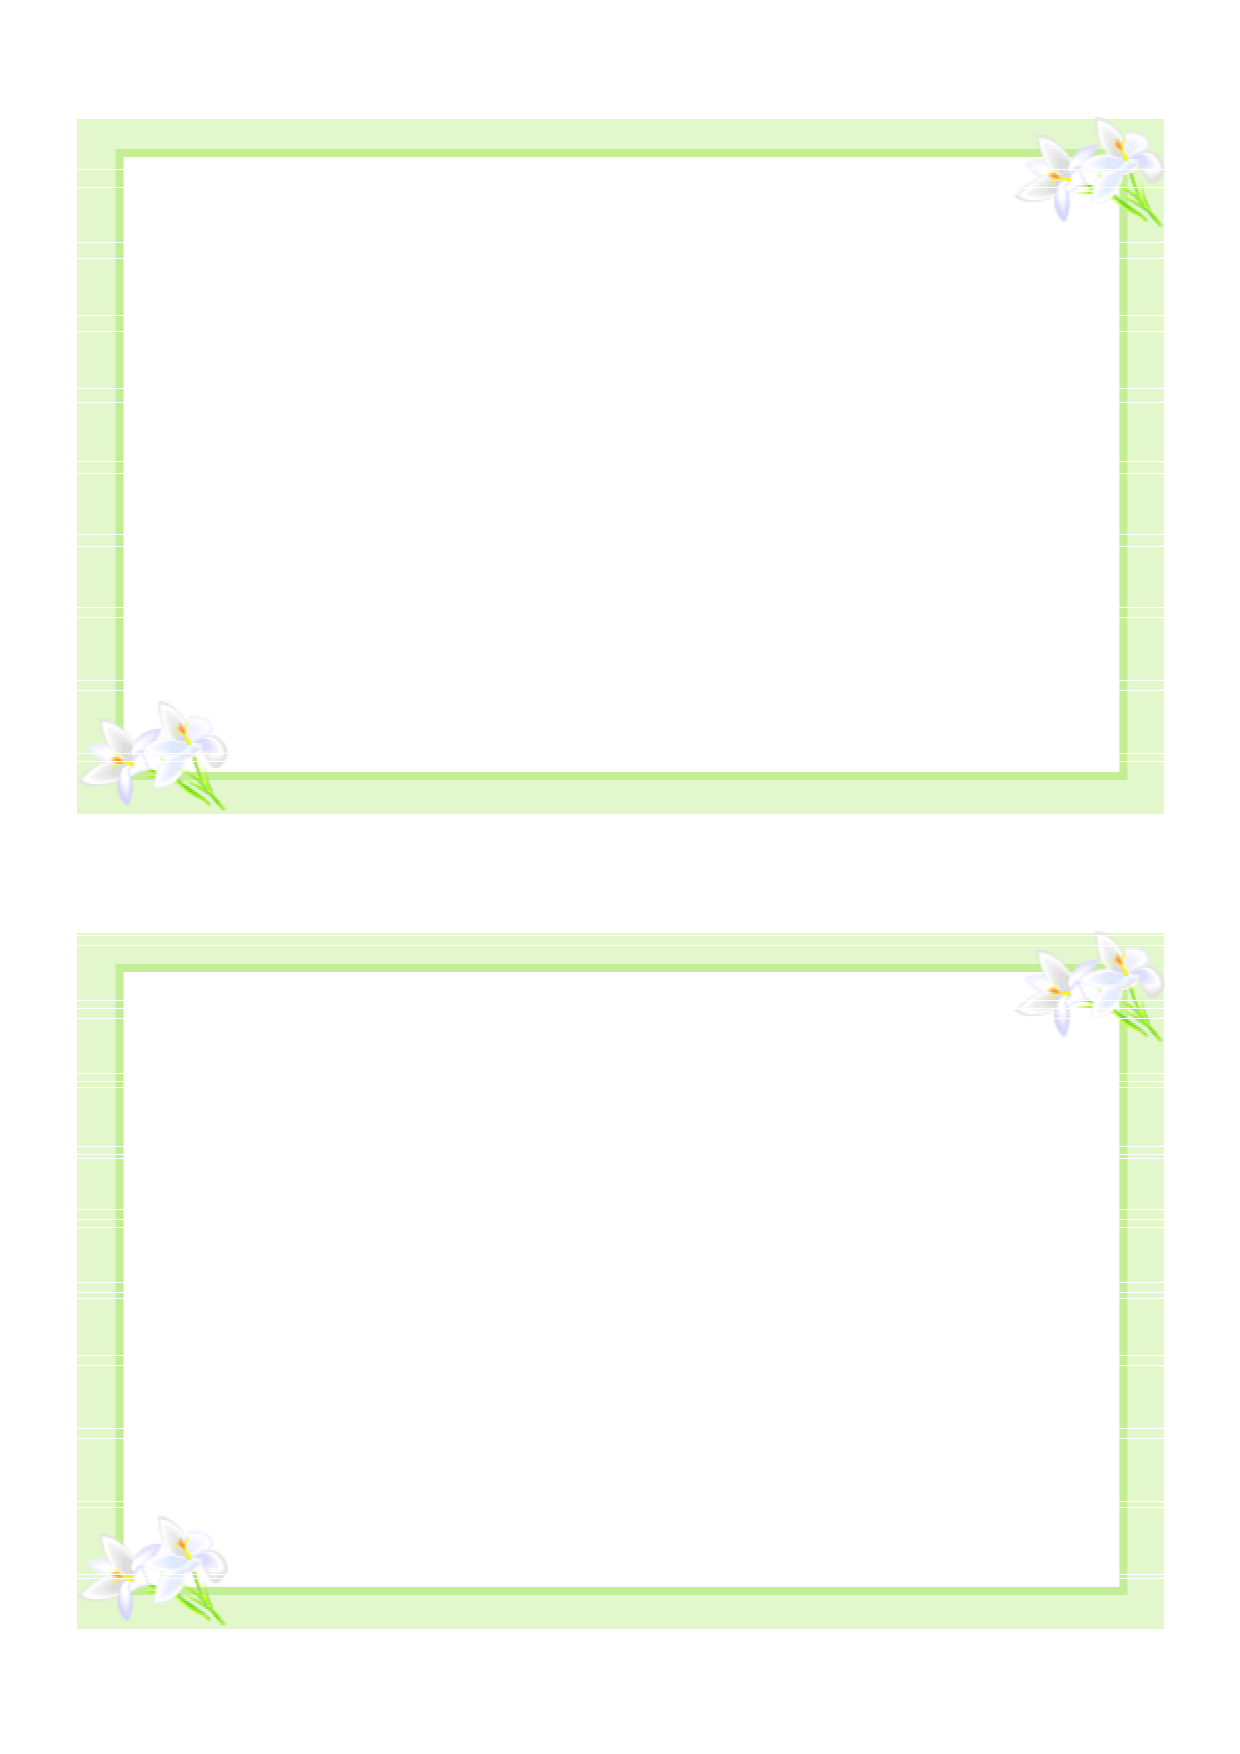 7 Images of Bereavement Templates Printable